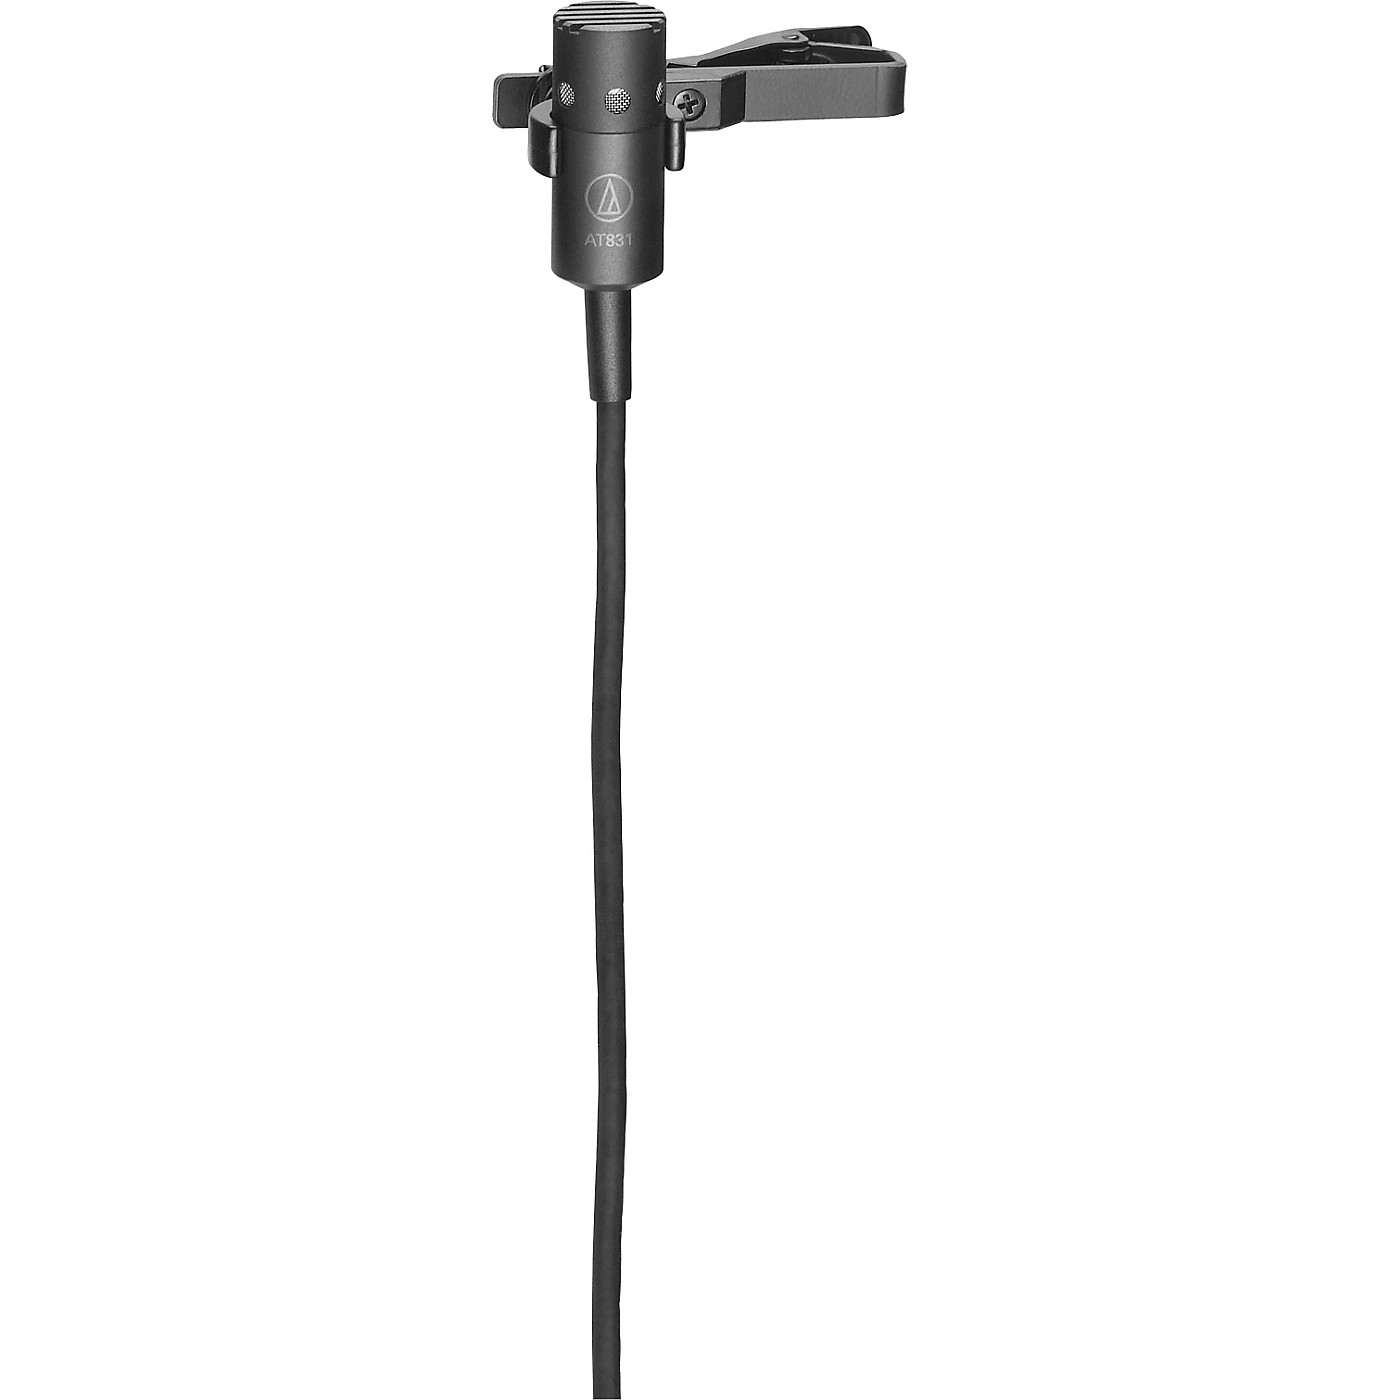 Audio-Technica AT831cT4 Cardioid Condenser lav wired for Shure w/o power supply thumbnail